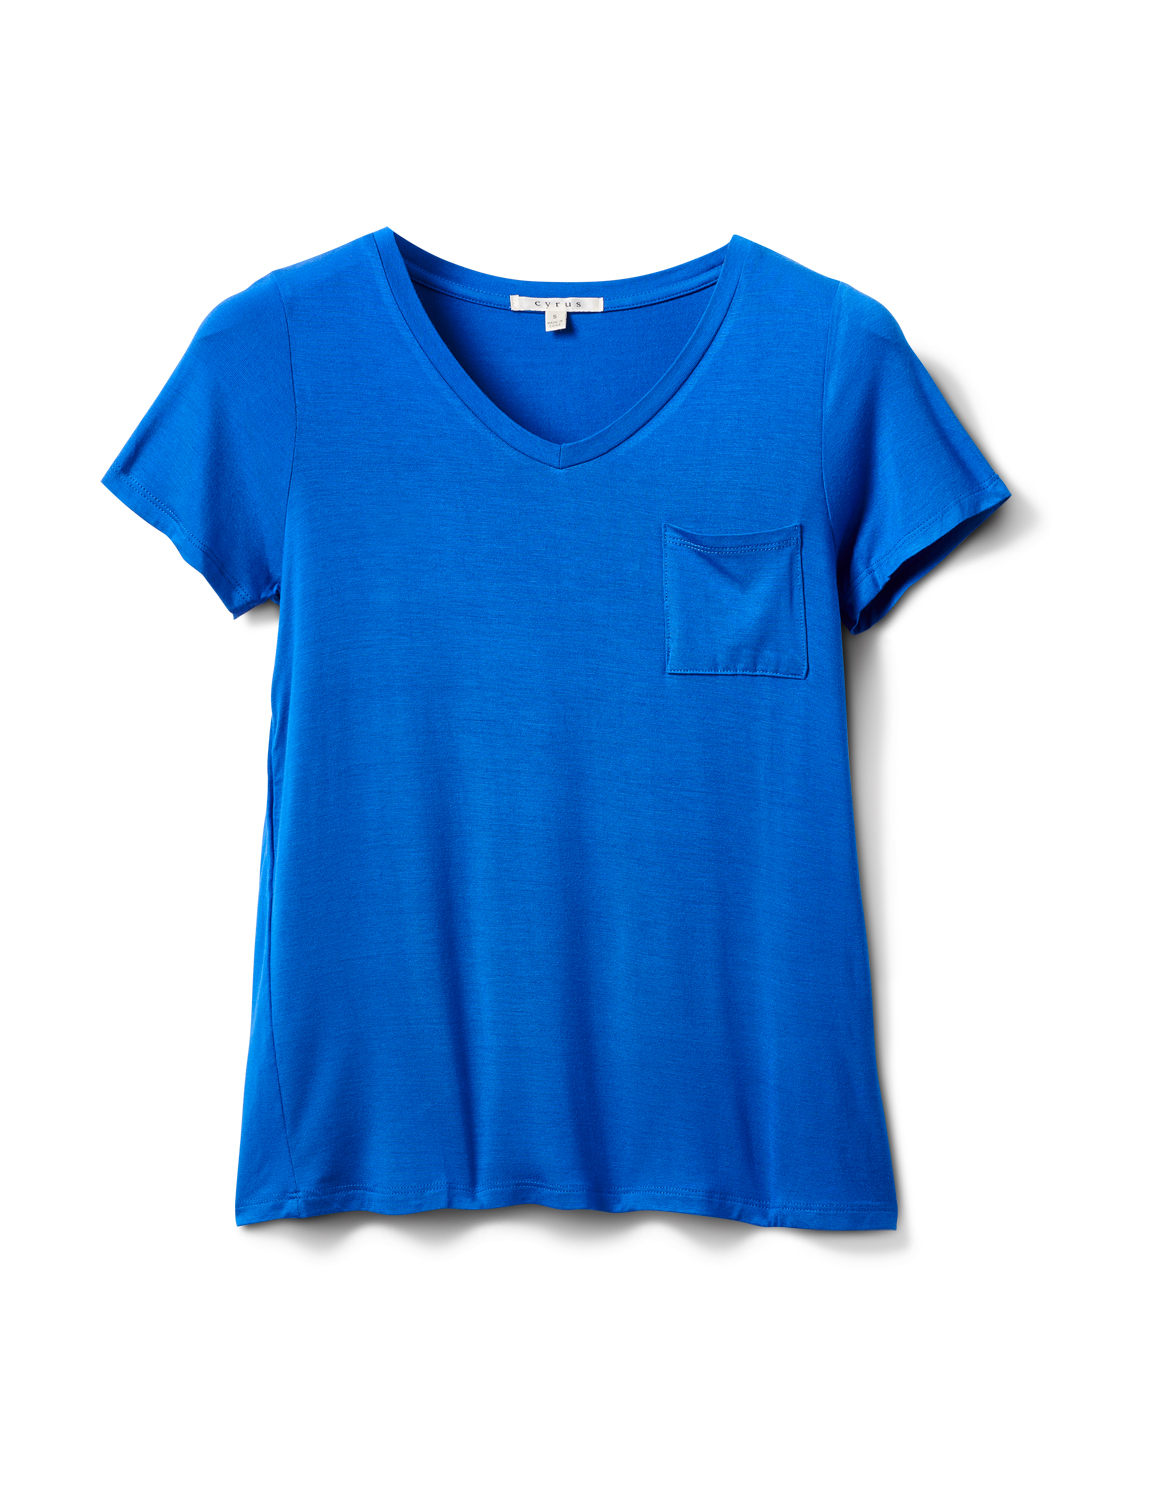 Rayon Span V-Neck Tee -Royal Blue - Front